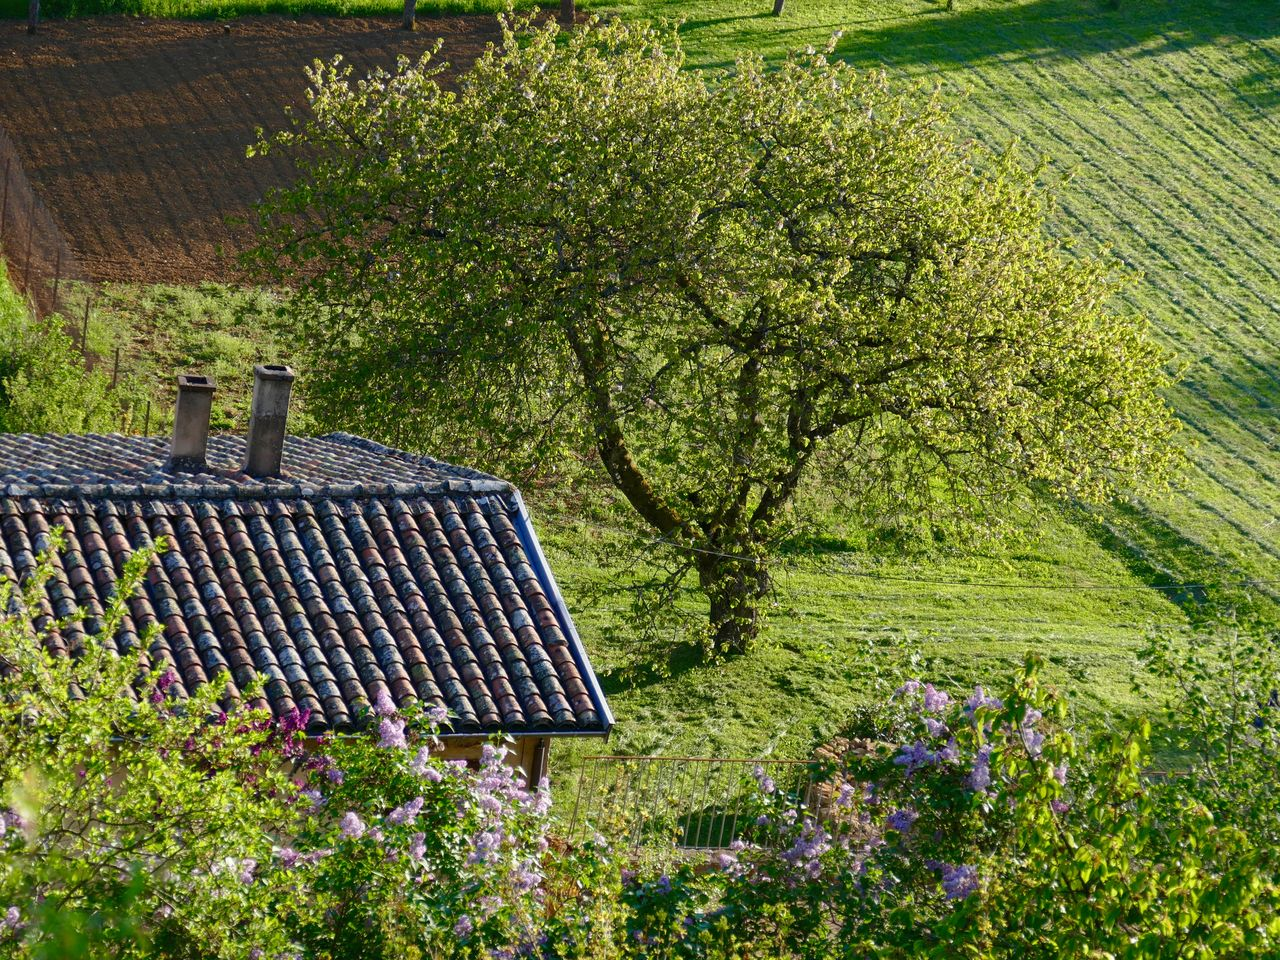 High Angle View Of Tree And House In Grassy Field